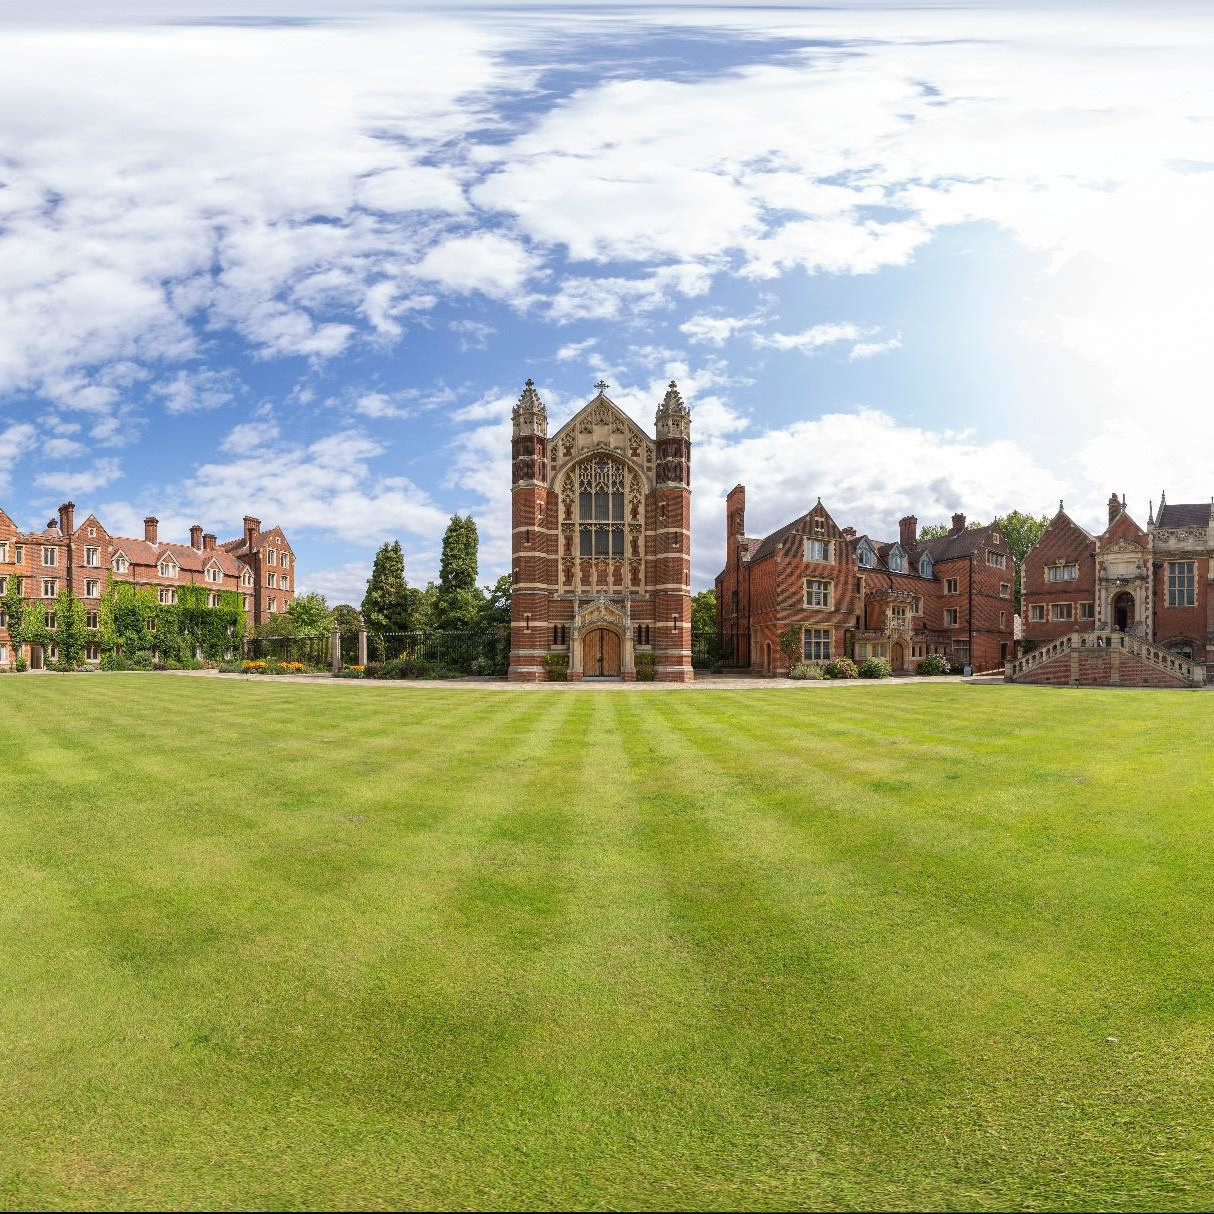 Visit Selwyn - virtually